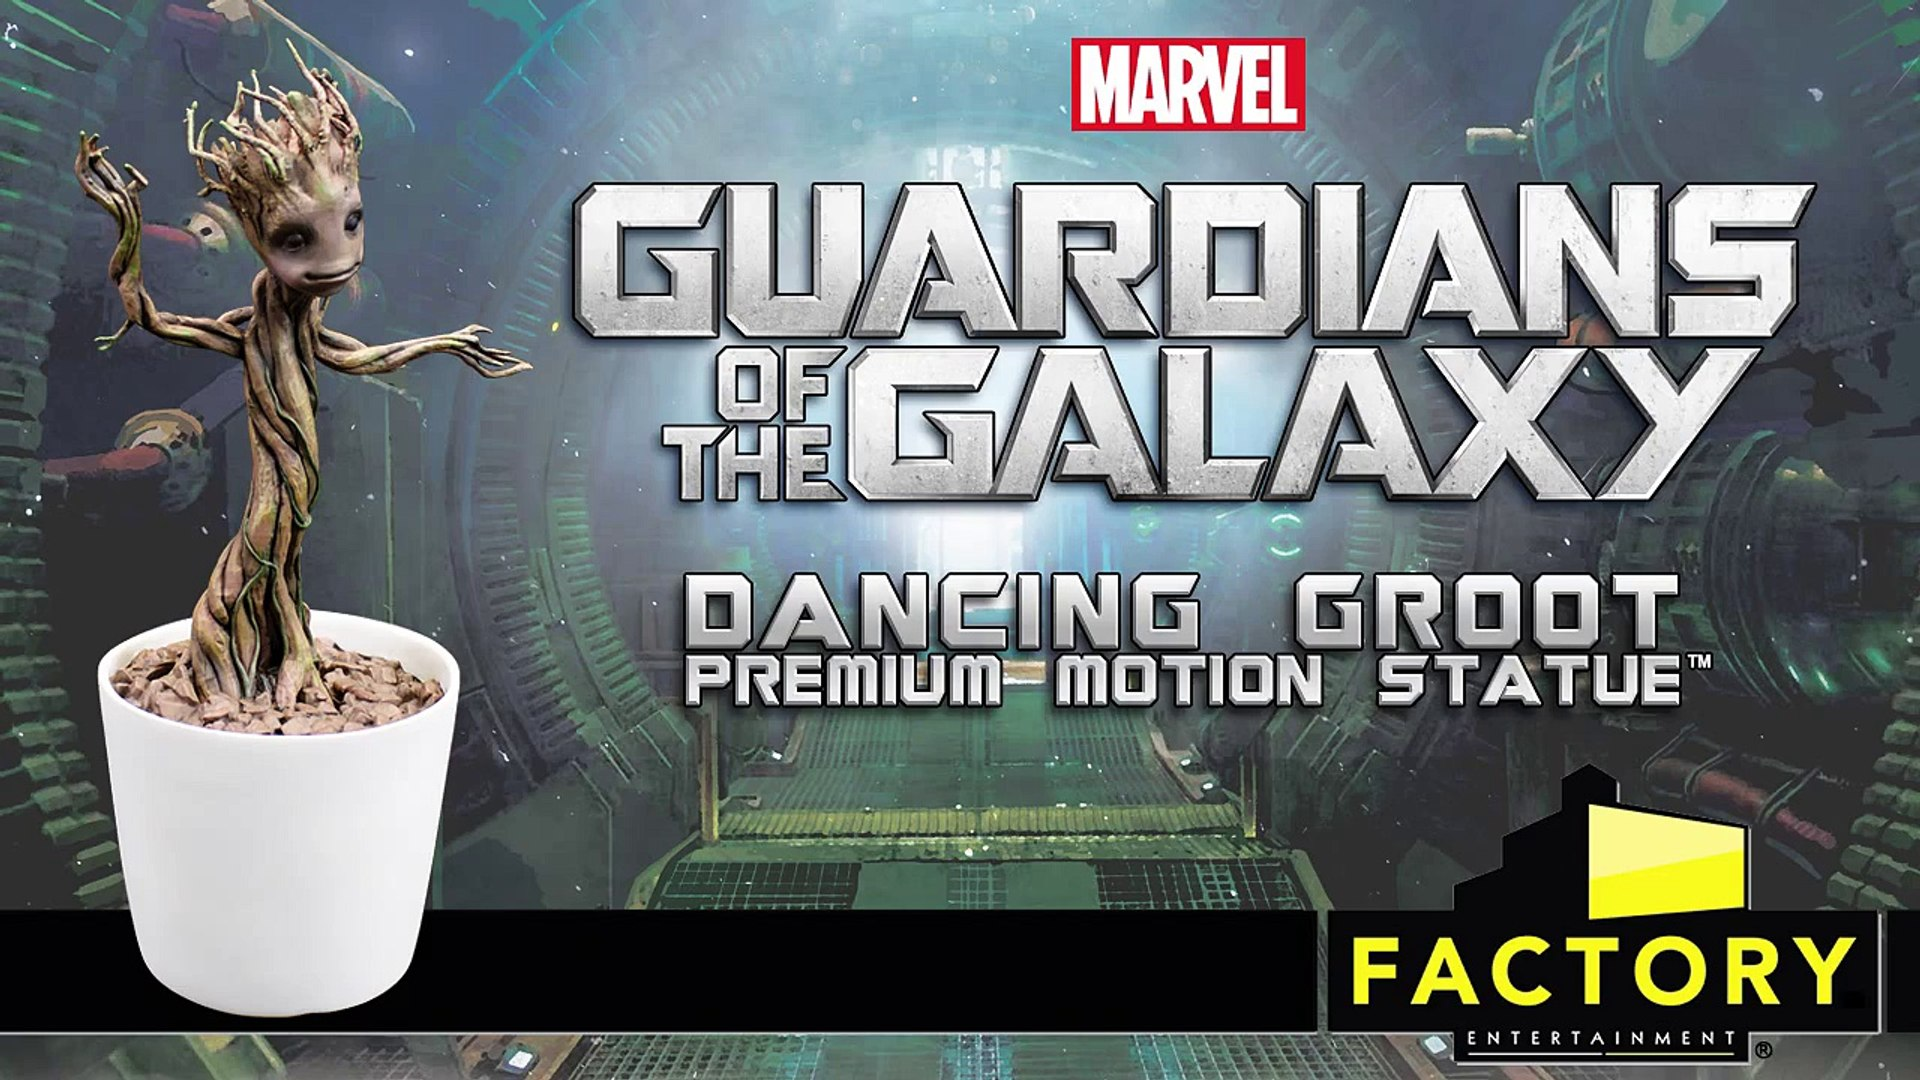 Factory Entertainment - Guardians of the Galaxy Dancing Groot Premium Motion Statue